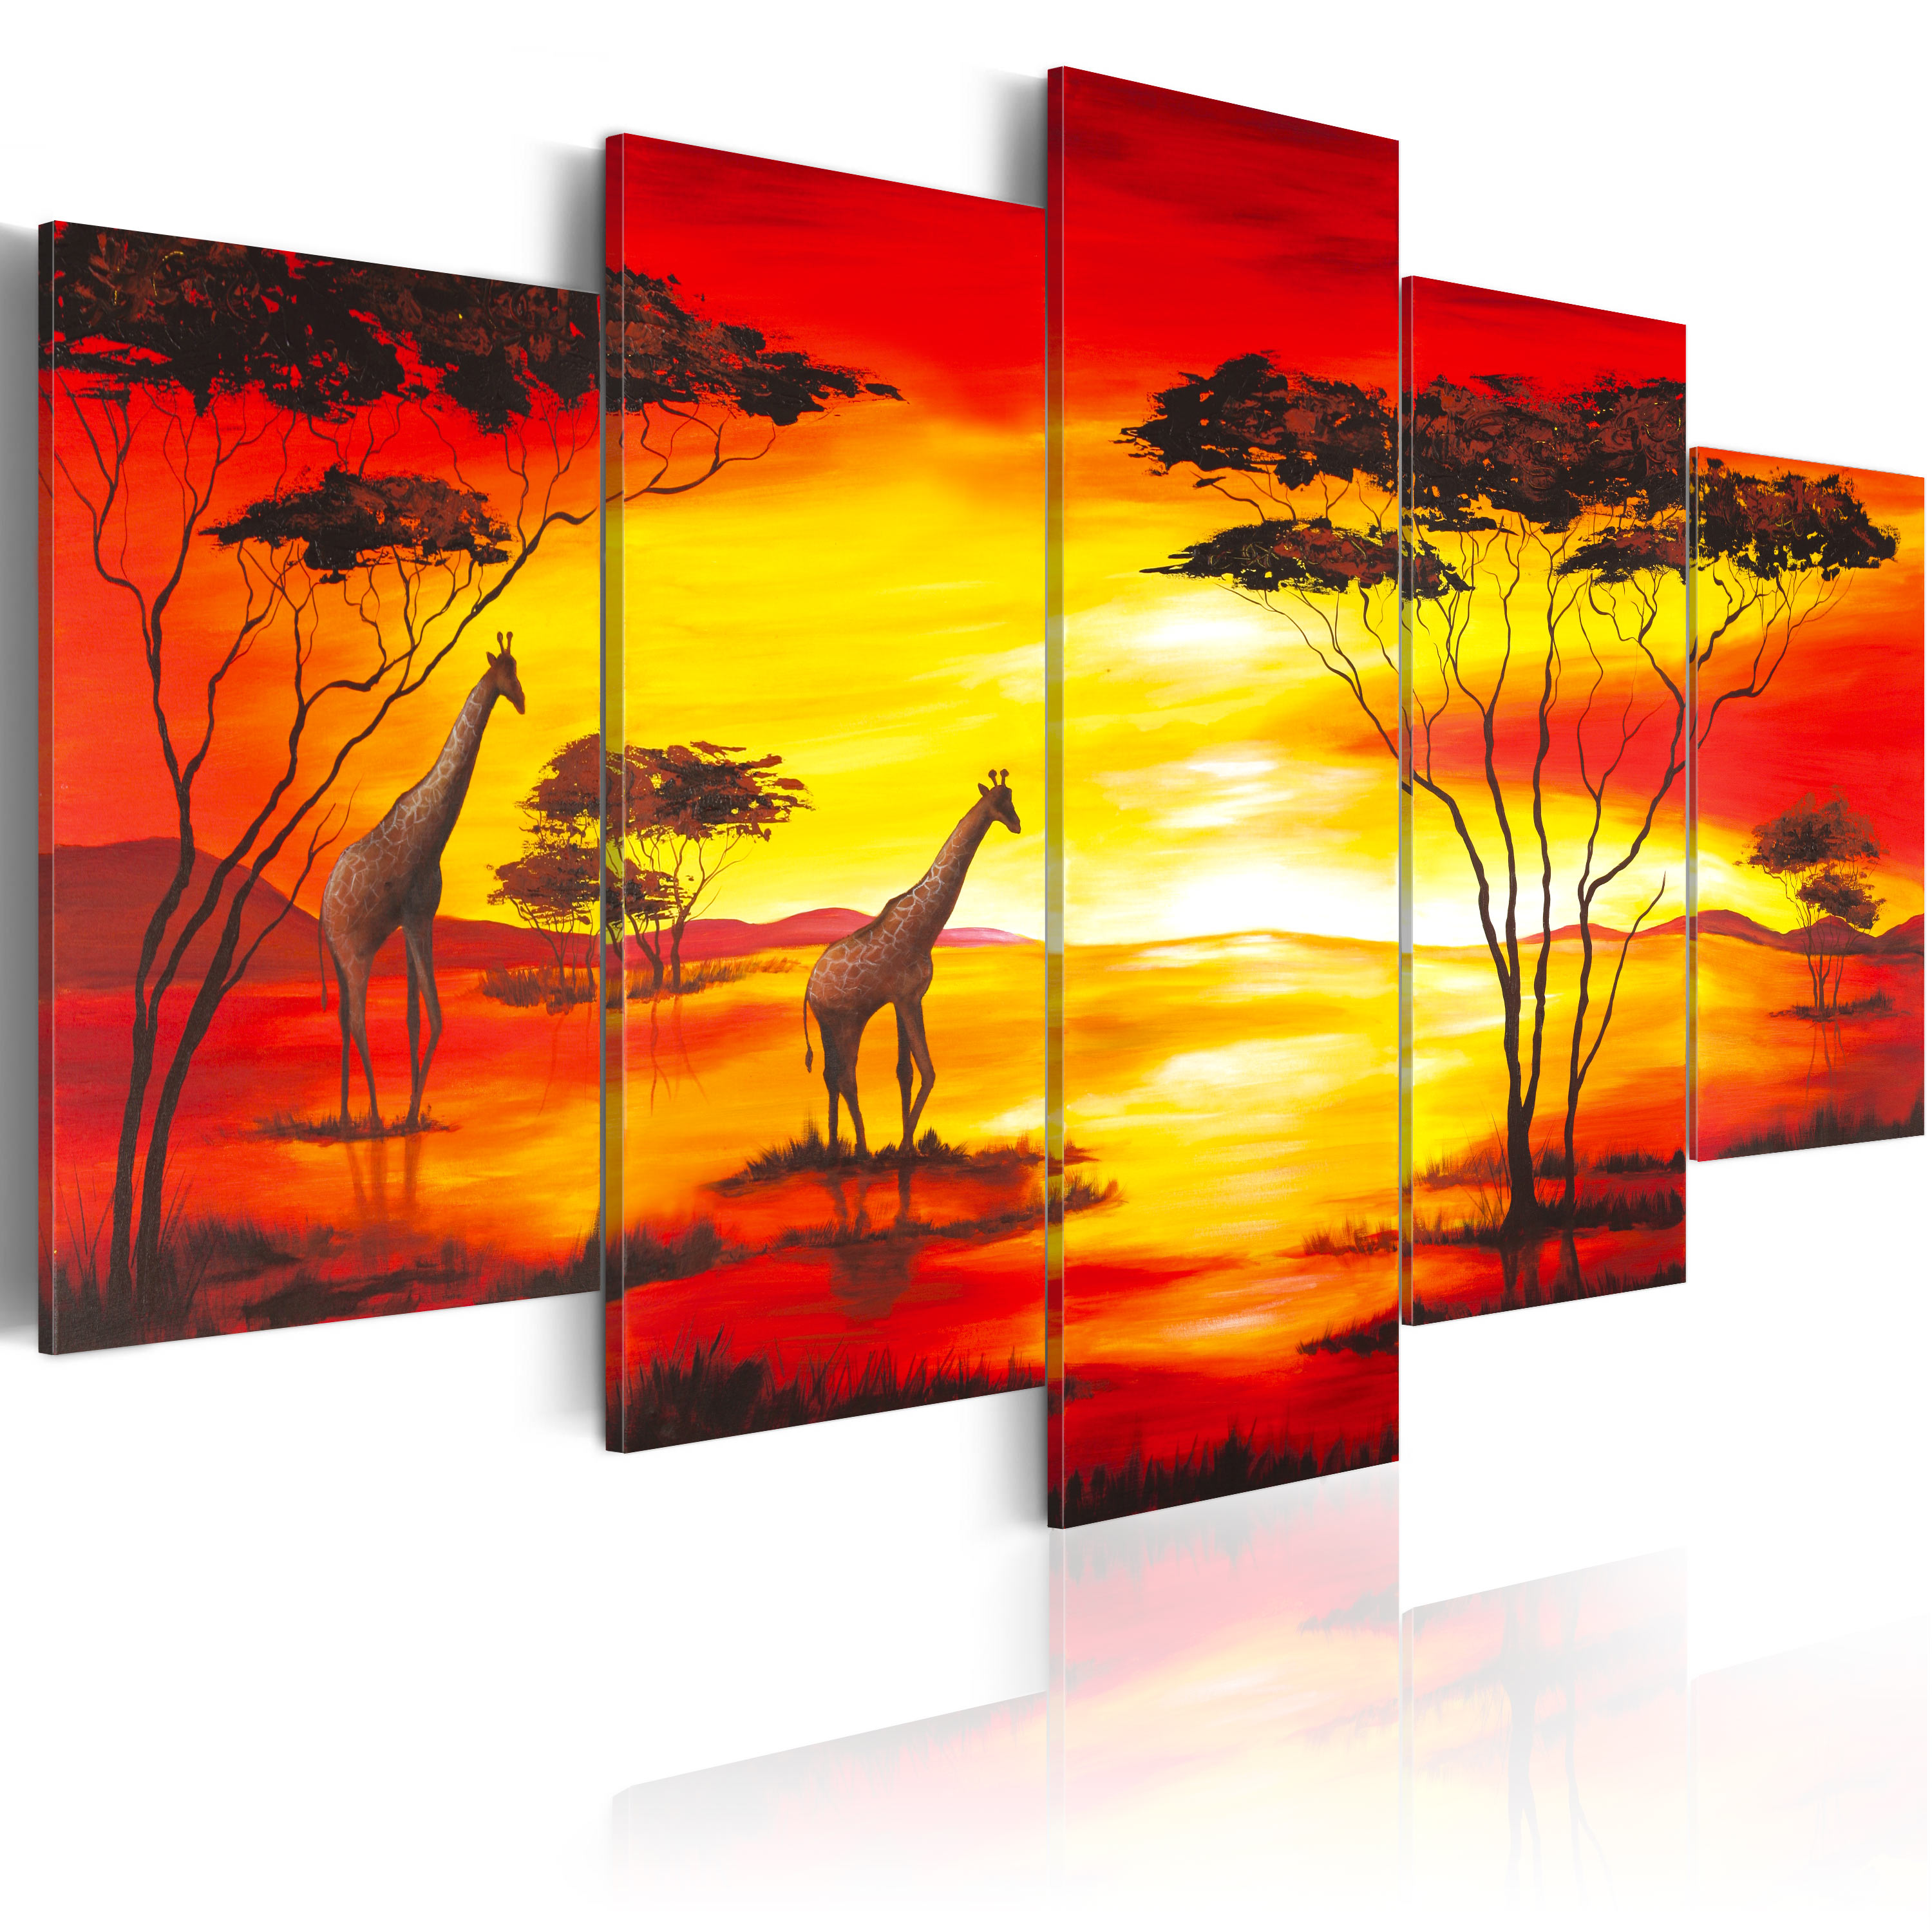 Obraz - Giraffes on the background with sunset 200x100